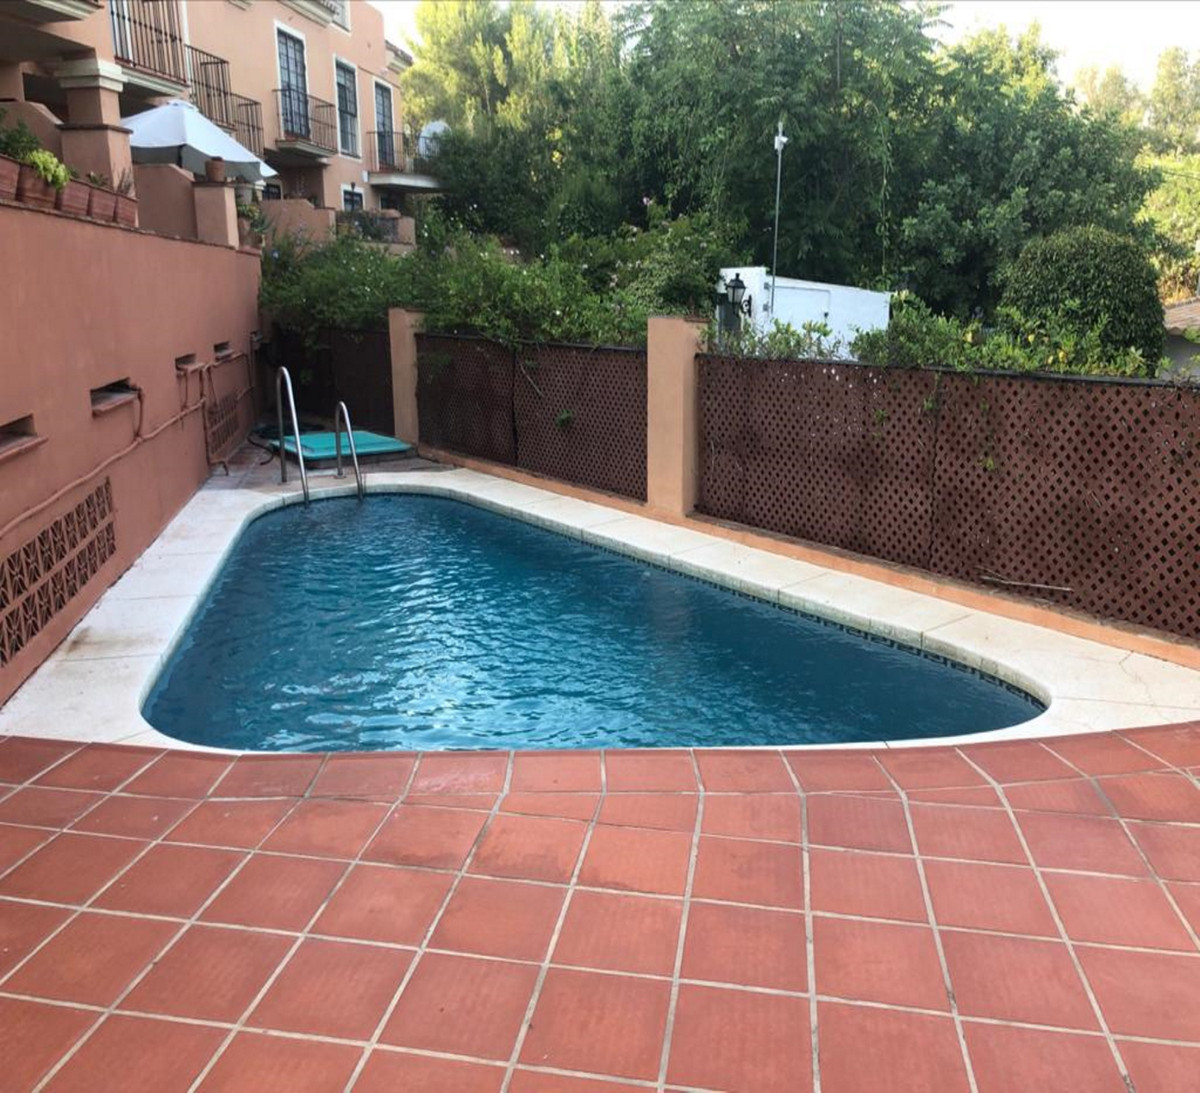 3 Bedroom Townhouse For Sale, The Golden Mile